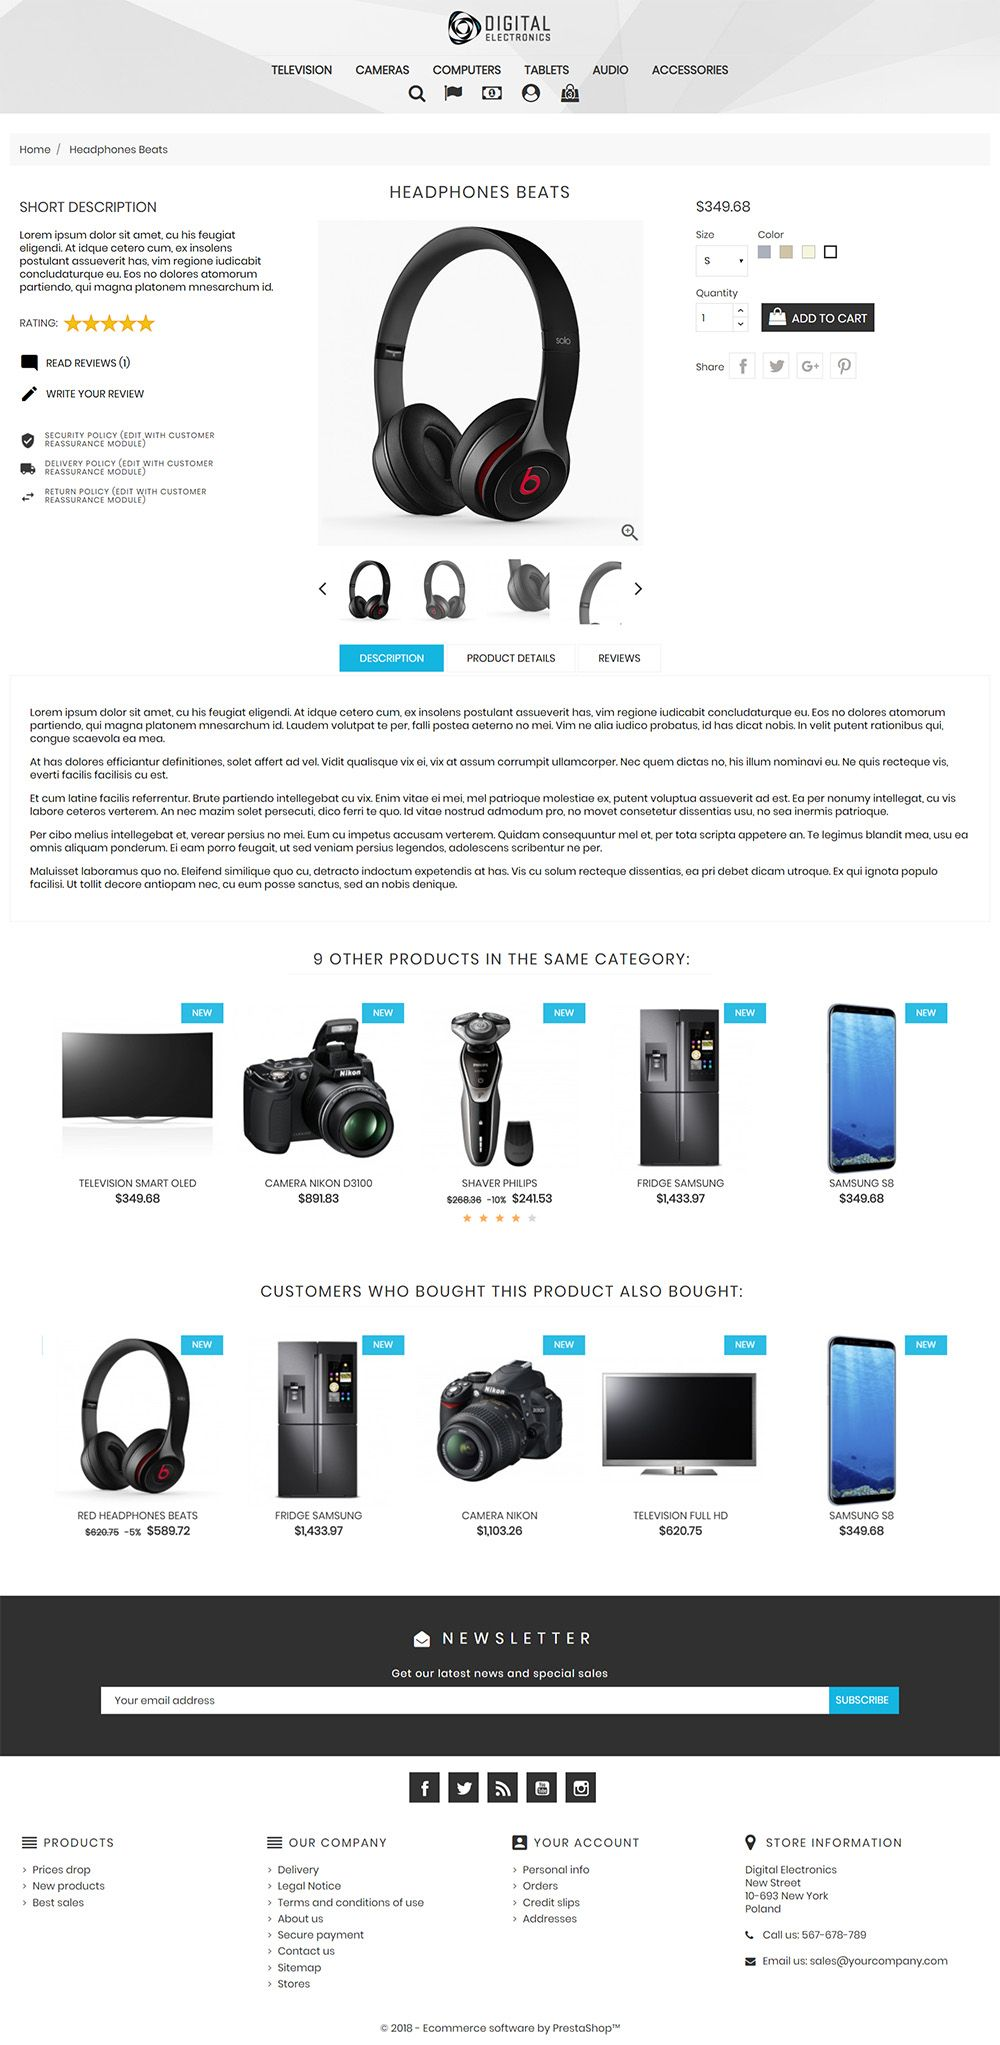 Digital Electronics Store - PrestaShop Theme Screenshot 3